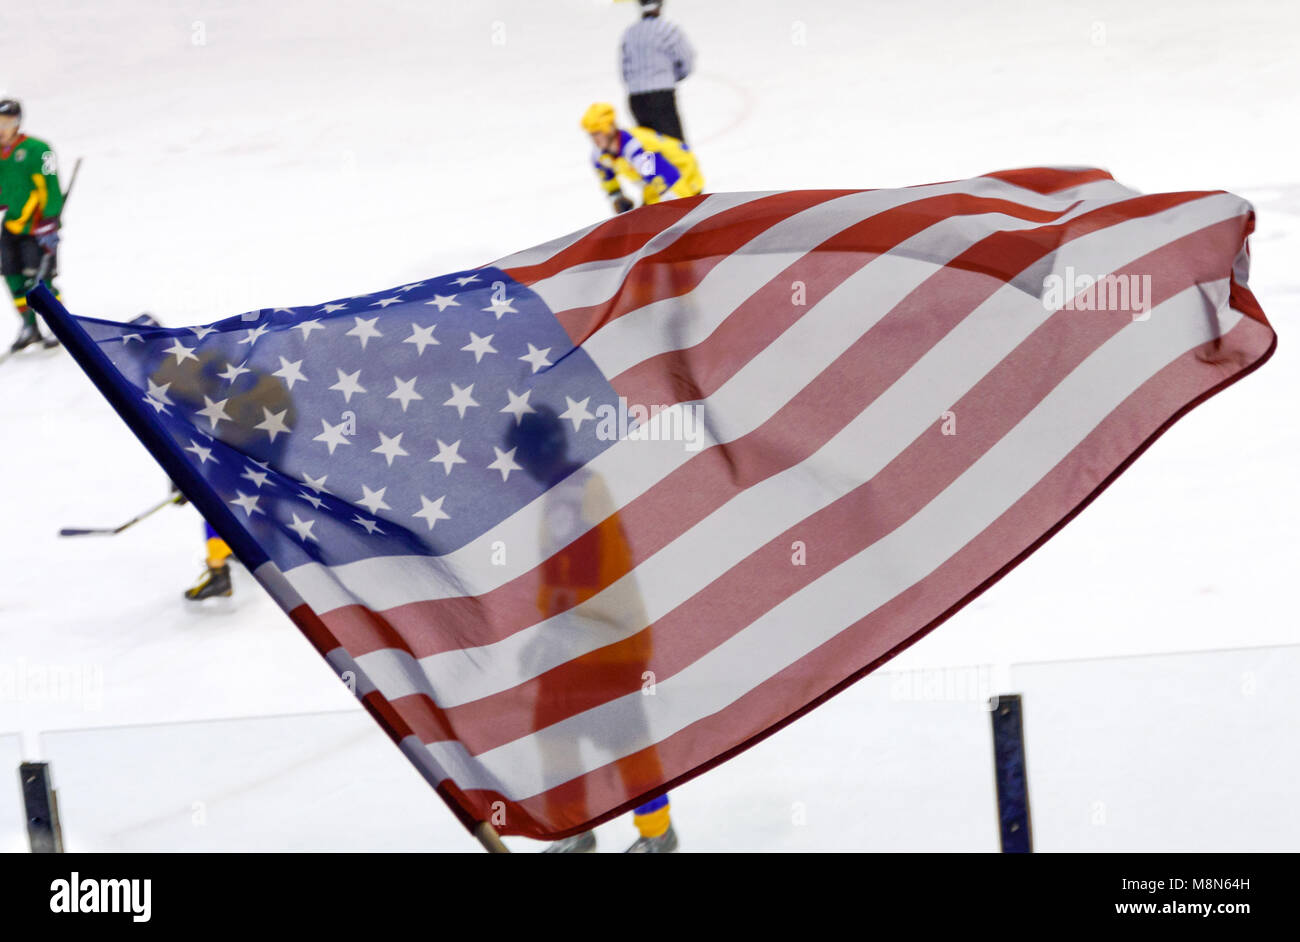 USA flag waving against a defocused hockey game background. - Stock Image